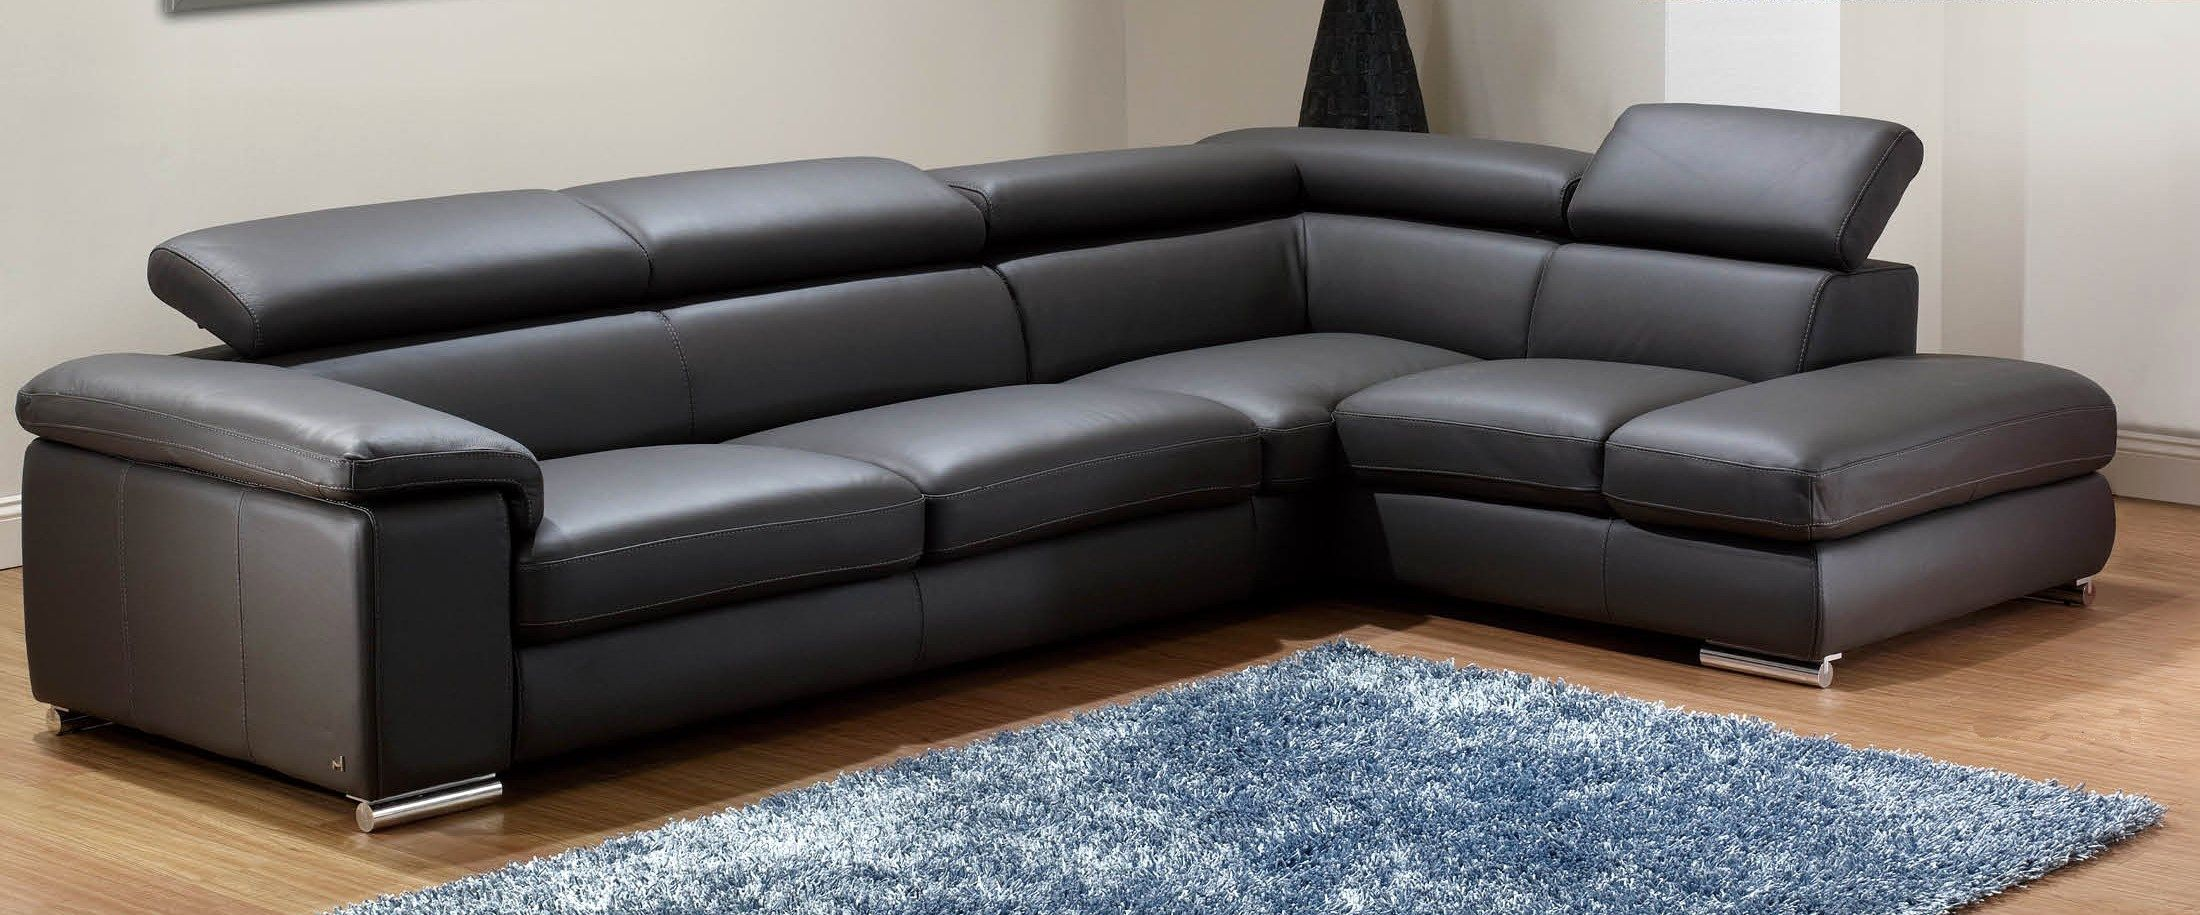 Inspirational Contemporary Sectional Sofas For Small Spaces Image Contem Leather Sectional Sofas Italian Leather Sectional Sofa Modern Sofa Sectional